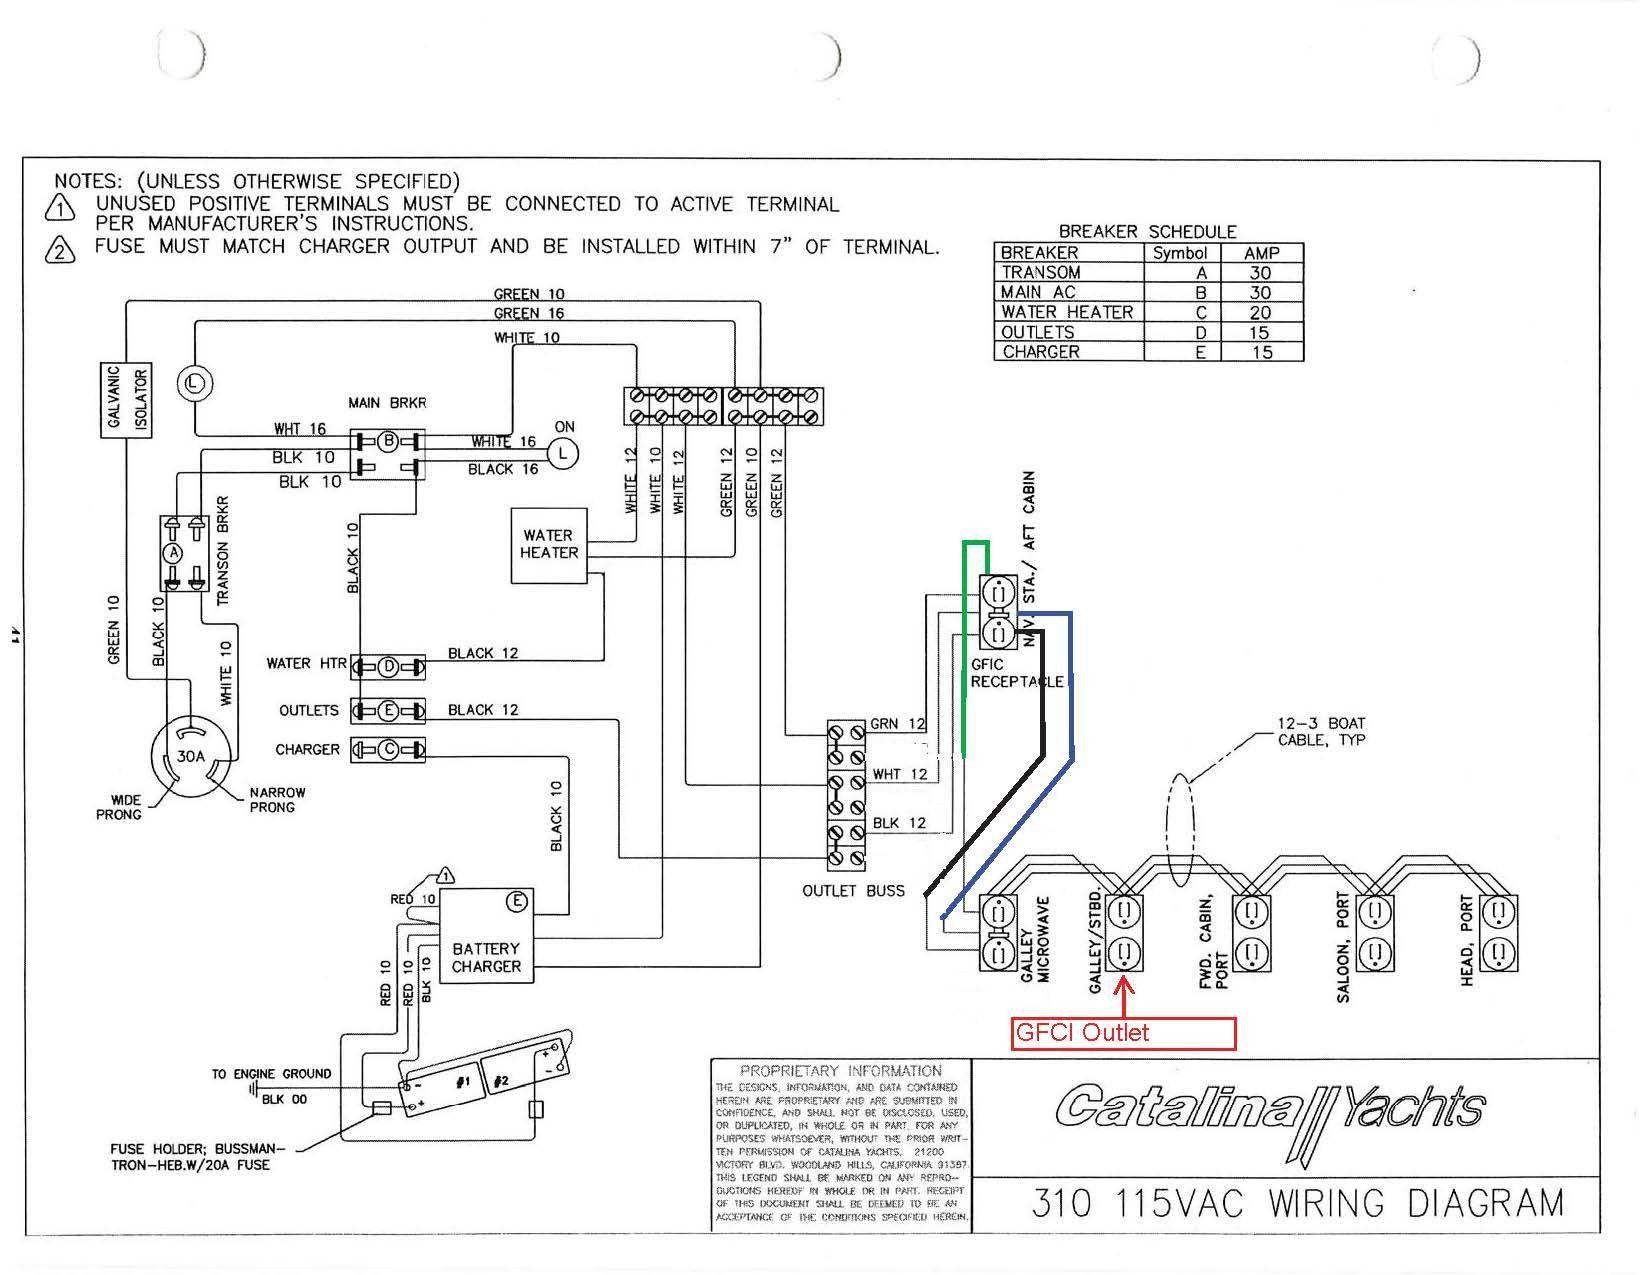 New Wiring Diagram Immersion Heater Switch Diagram Diagramsample Diagramformat Electrical Wiring Diagram Diagram Dimmer Switch